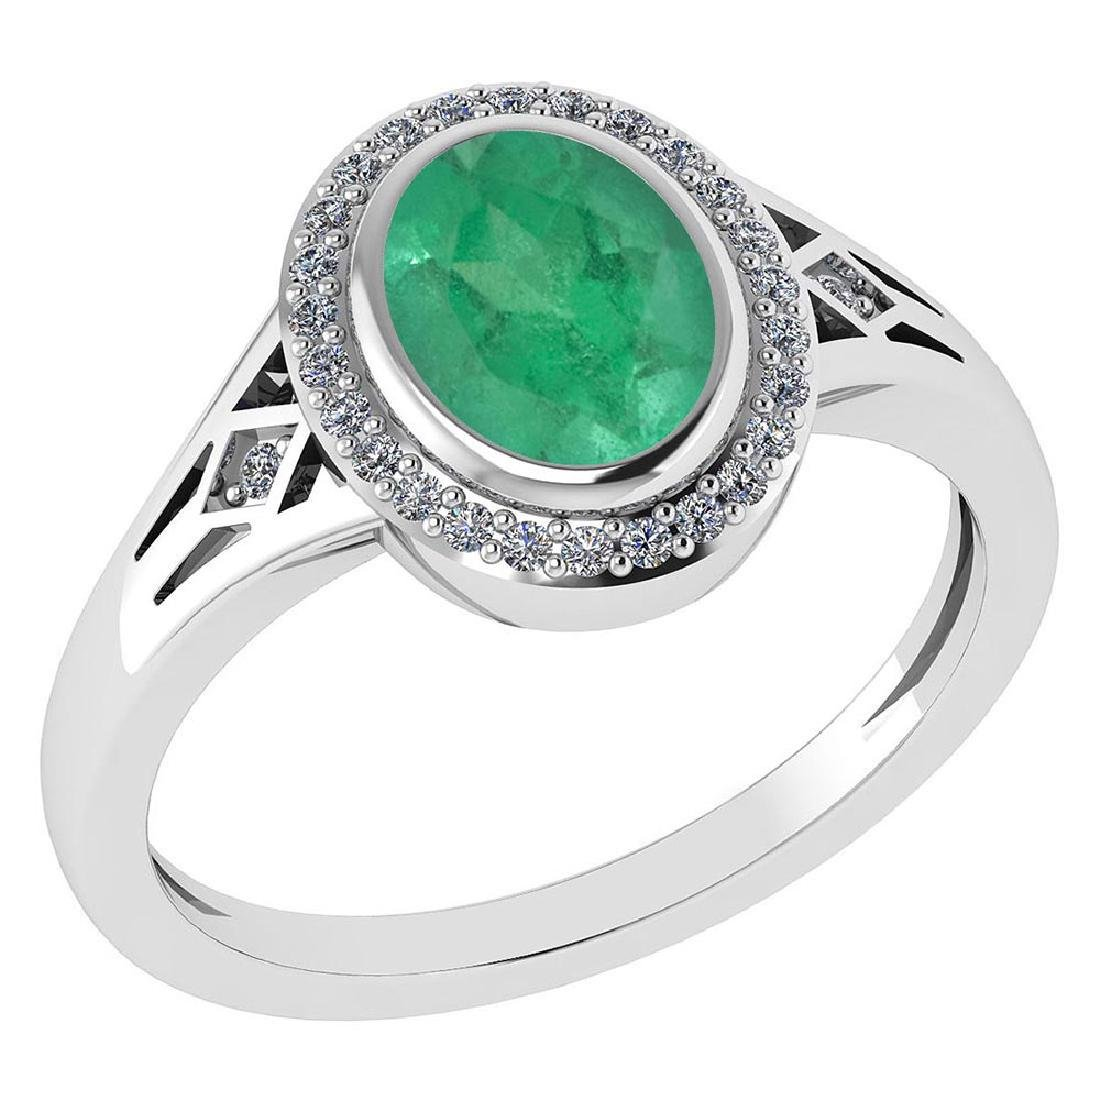 Certified 1.39 Ctw Emerald And Diamond 14k White Gold H